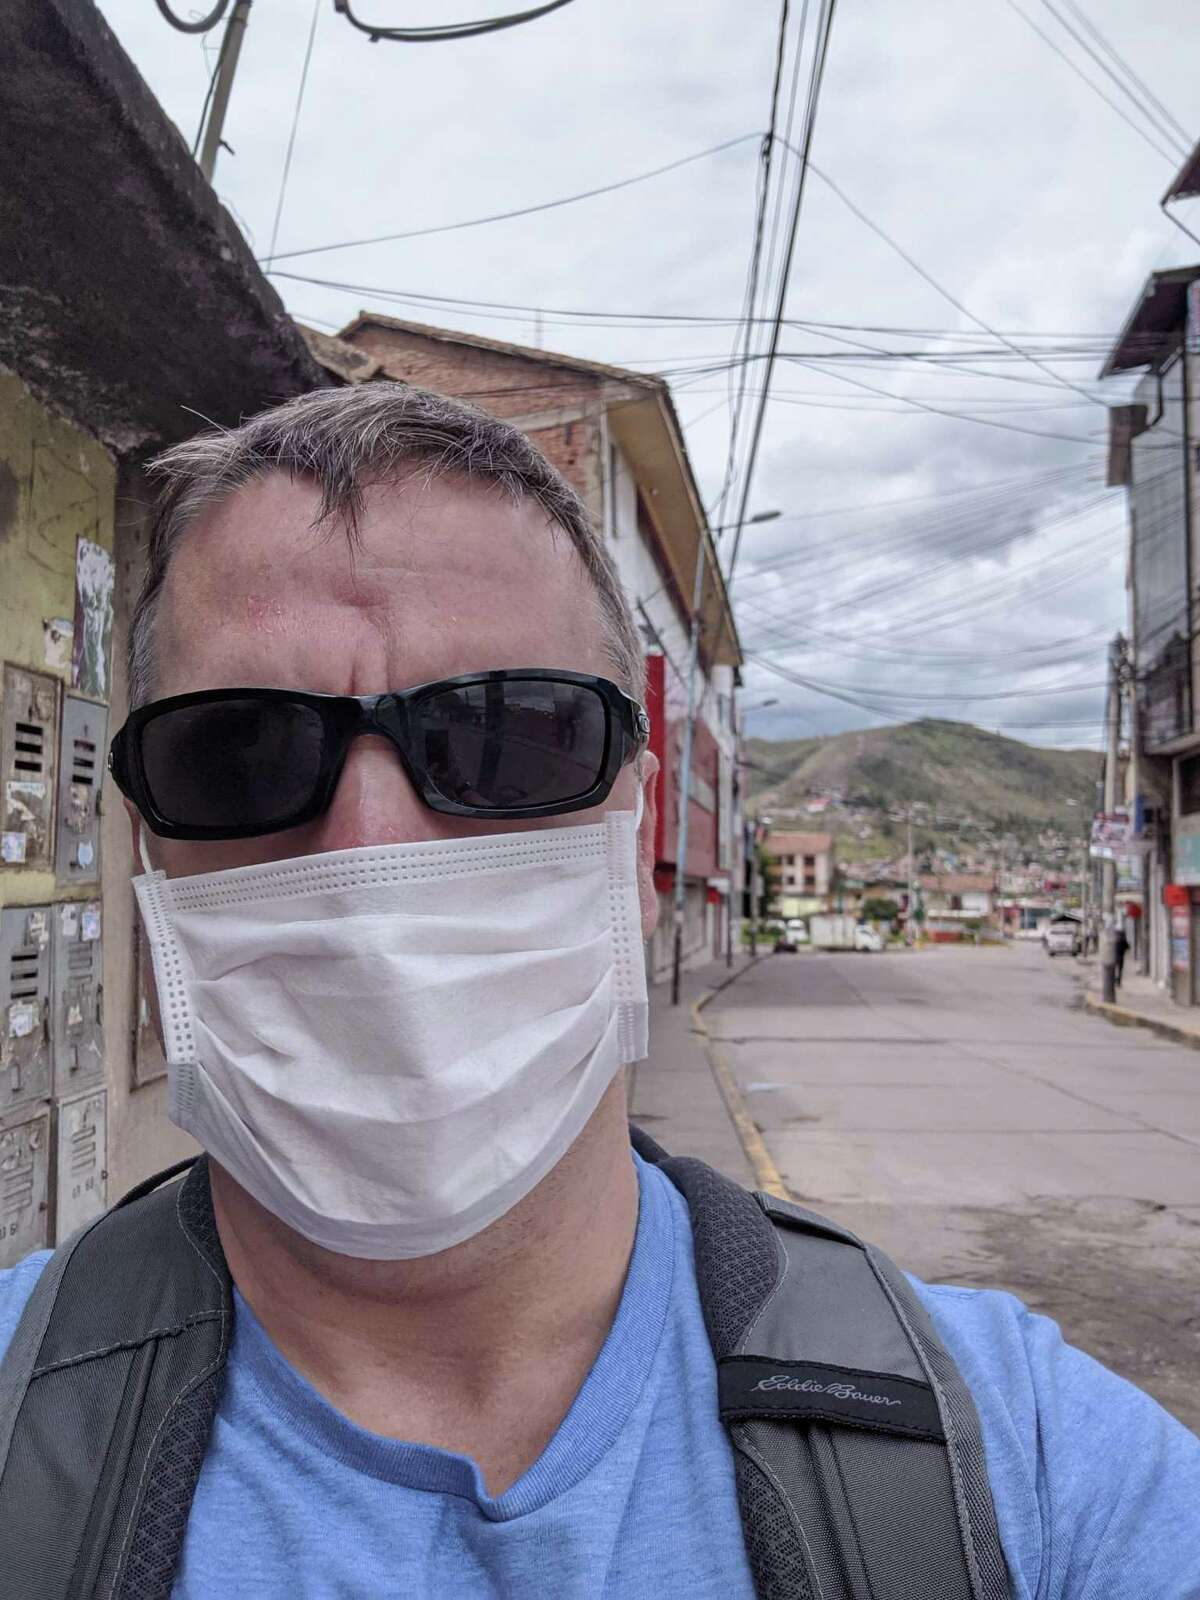 Carl LePack, 46, of Cromwell, takes a selfie in Peru, where he was stranded for more than a week due to the COVID-19 pandemic. He arrived home last week.